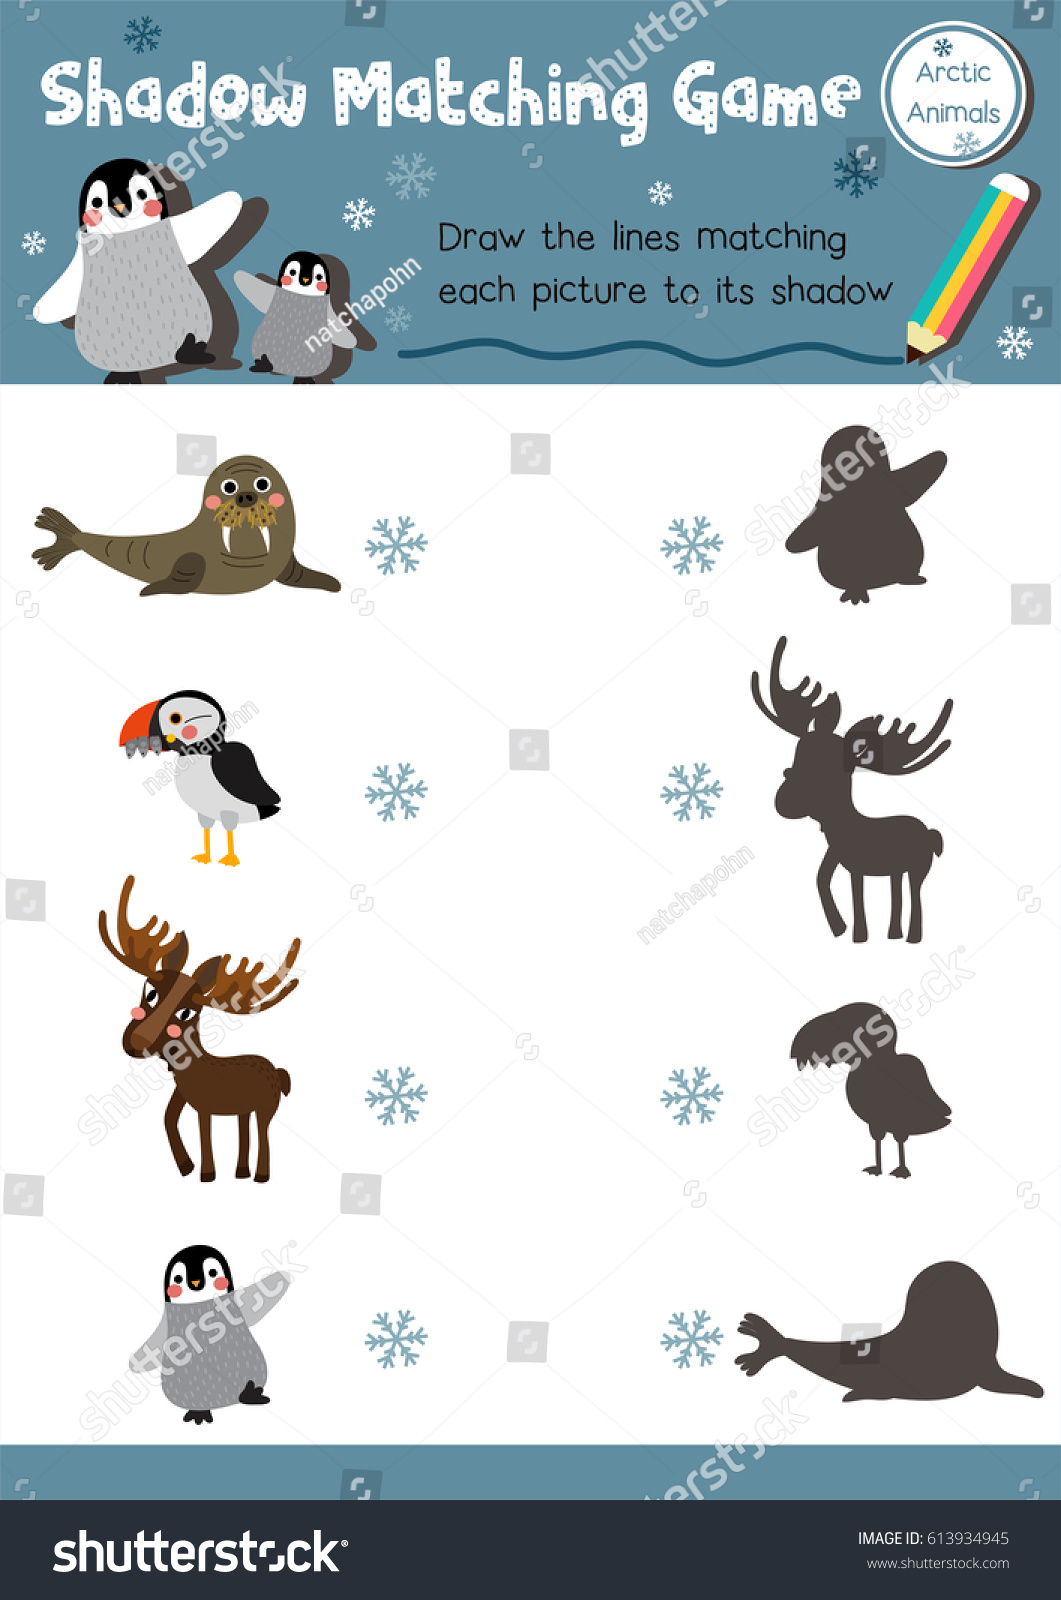 Shadow Matching Game Arctic Animals Preschool Stock Vector